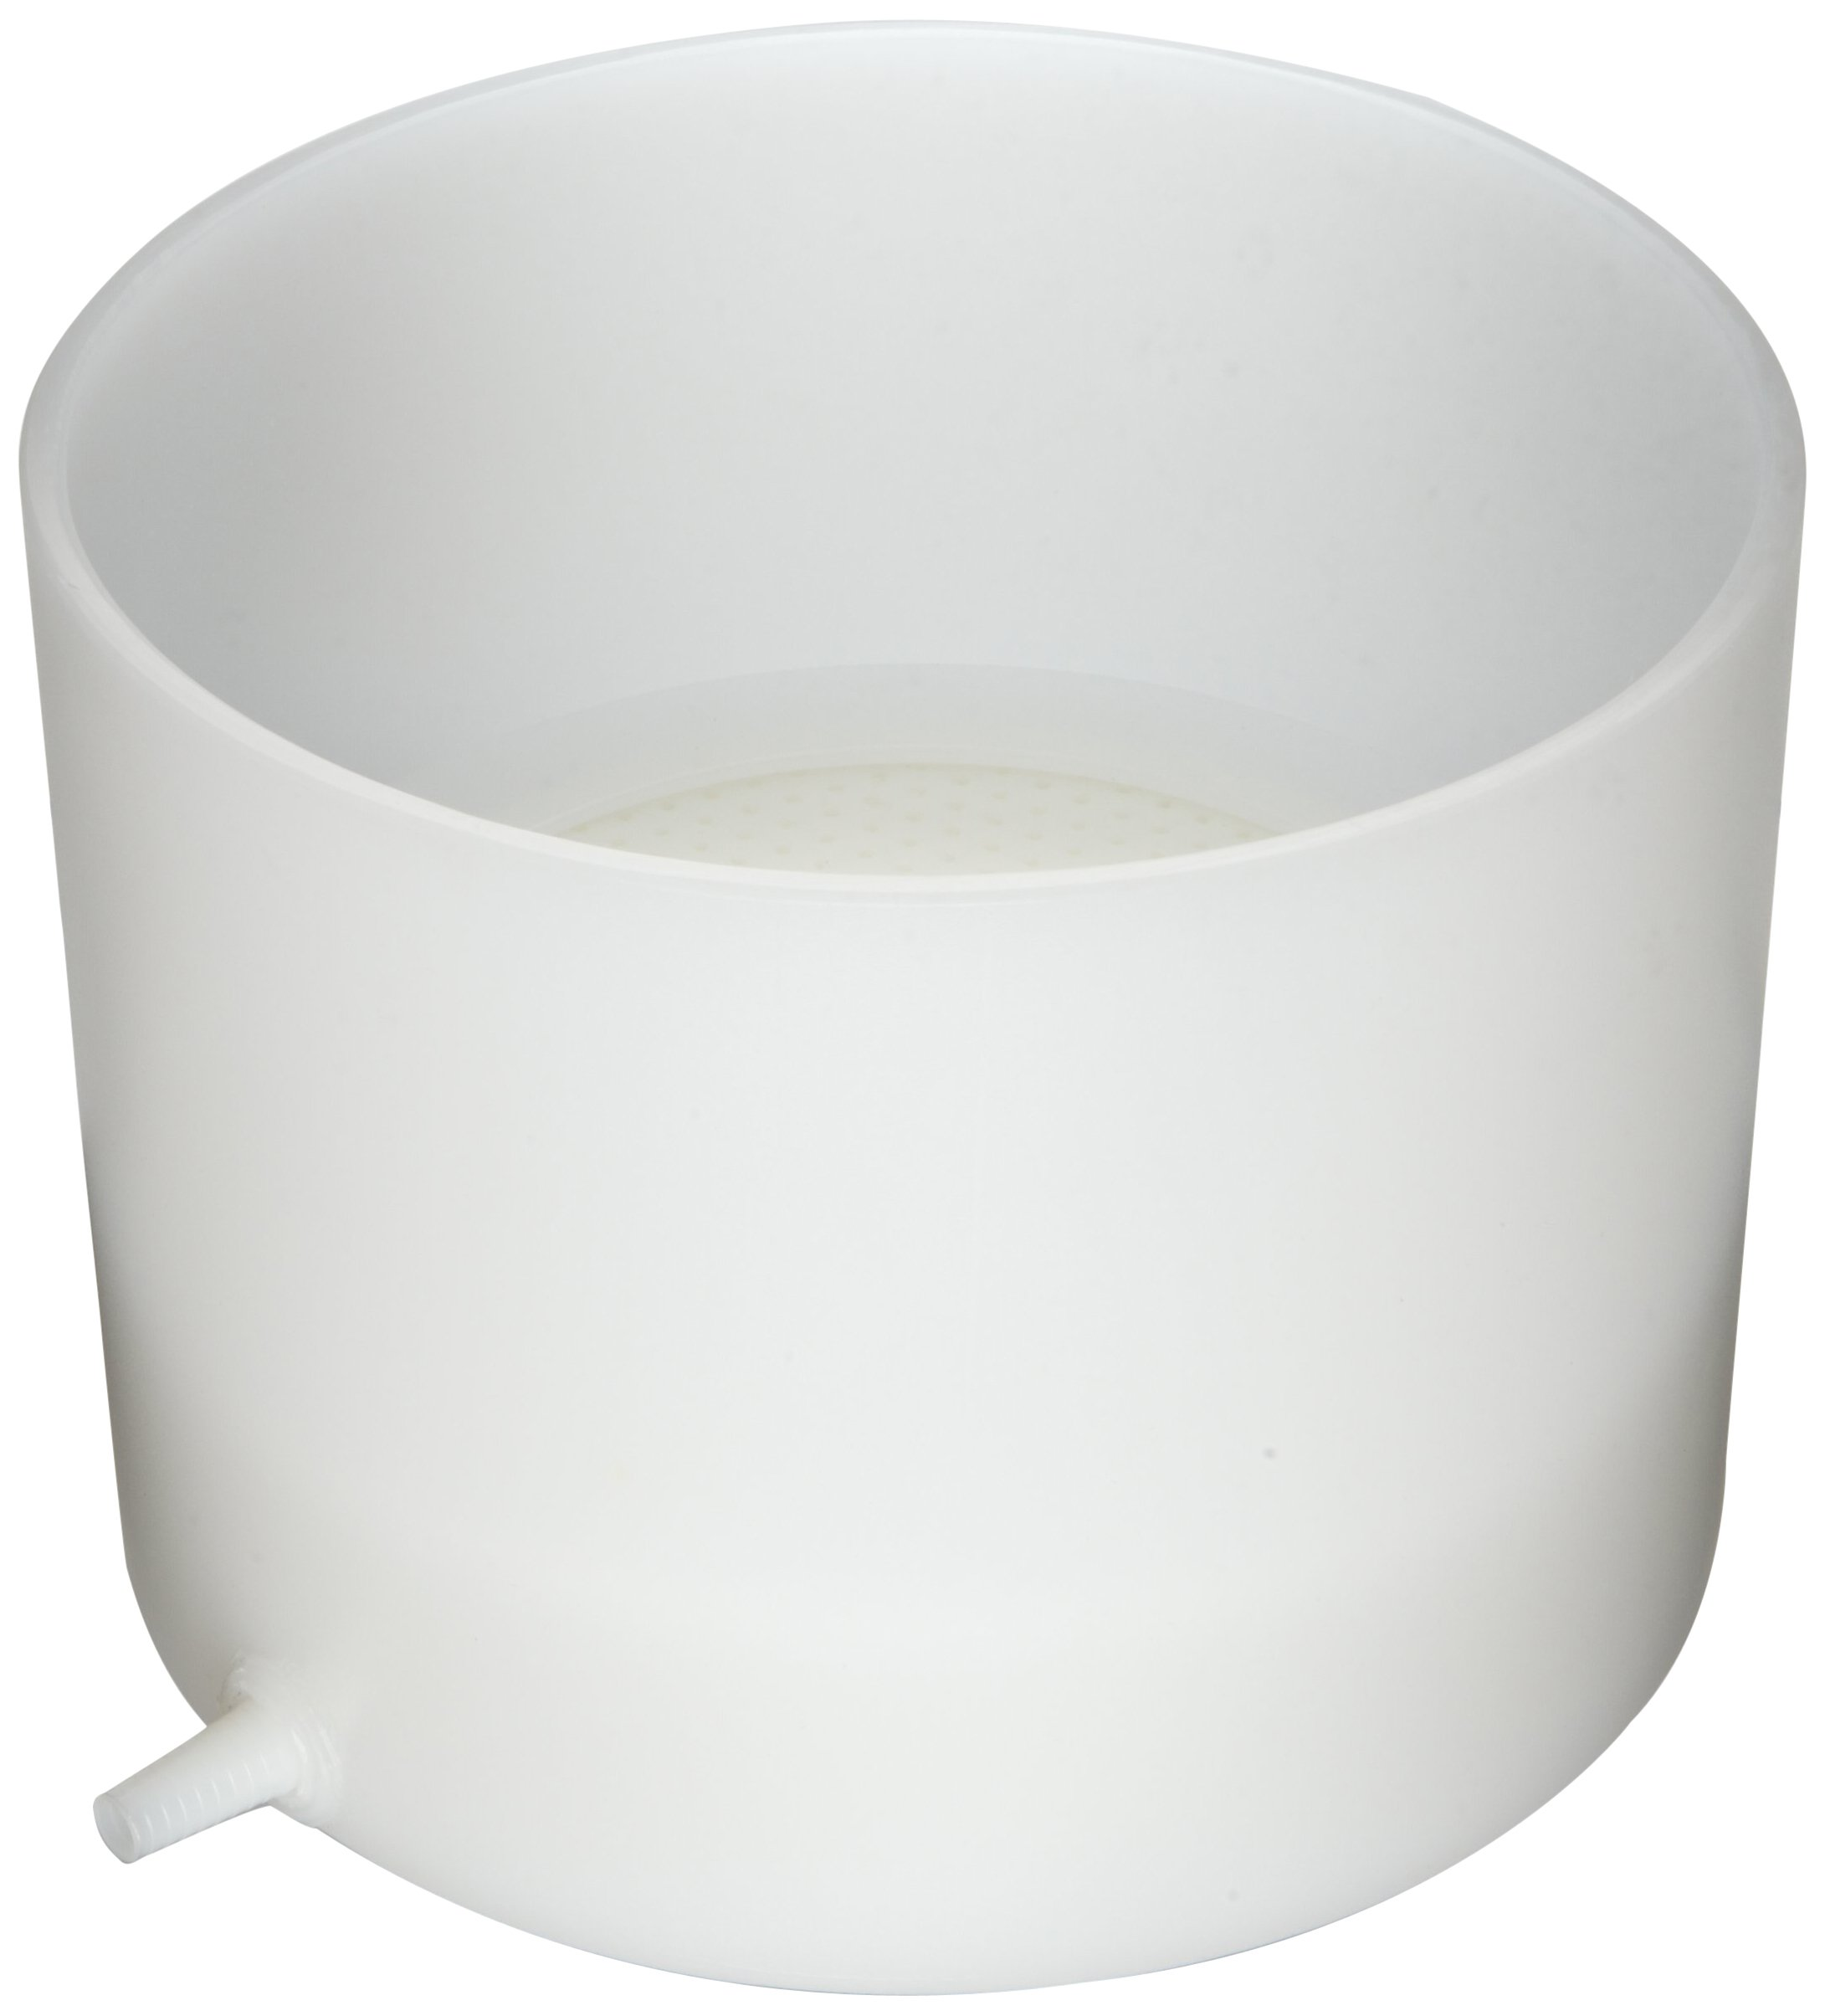 Bel-Art Polyethylene Buchner Table-Top Funnel with Medium Porosity Removable Plate; 18 in. I.D, 11.5 in. Height (H14626-3518)